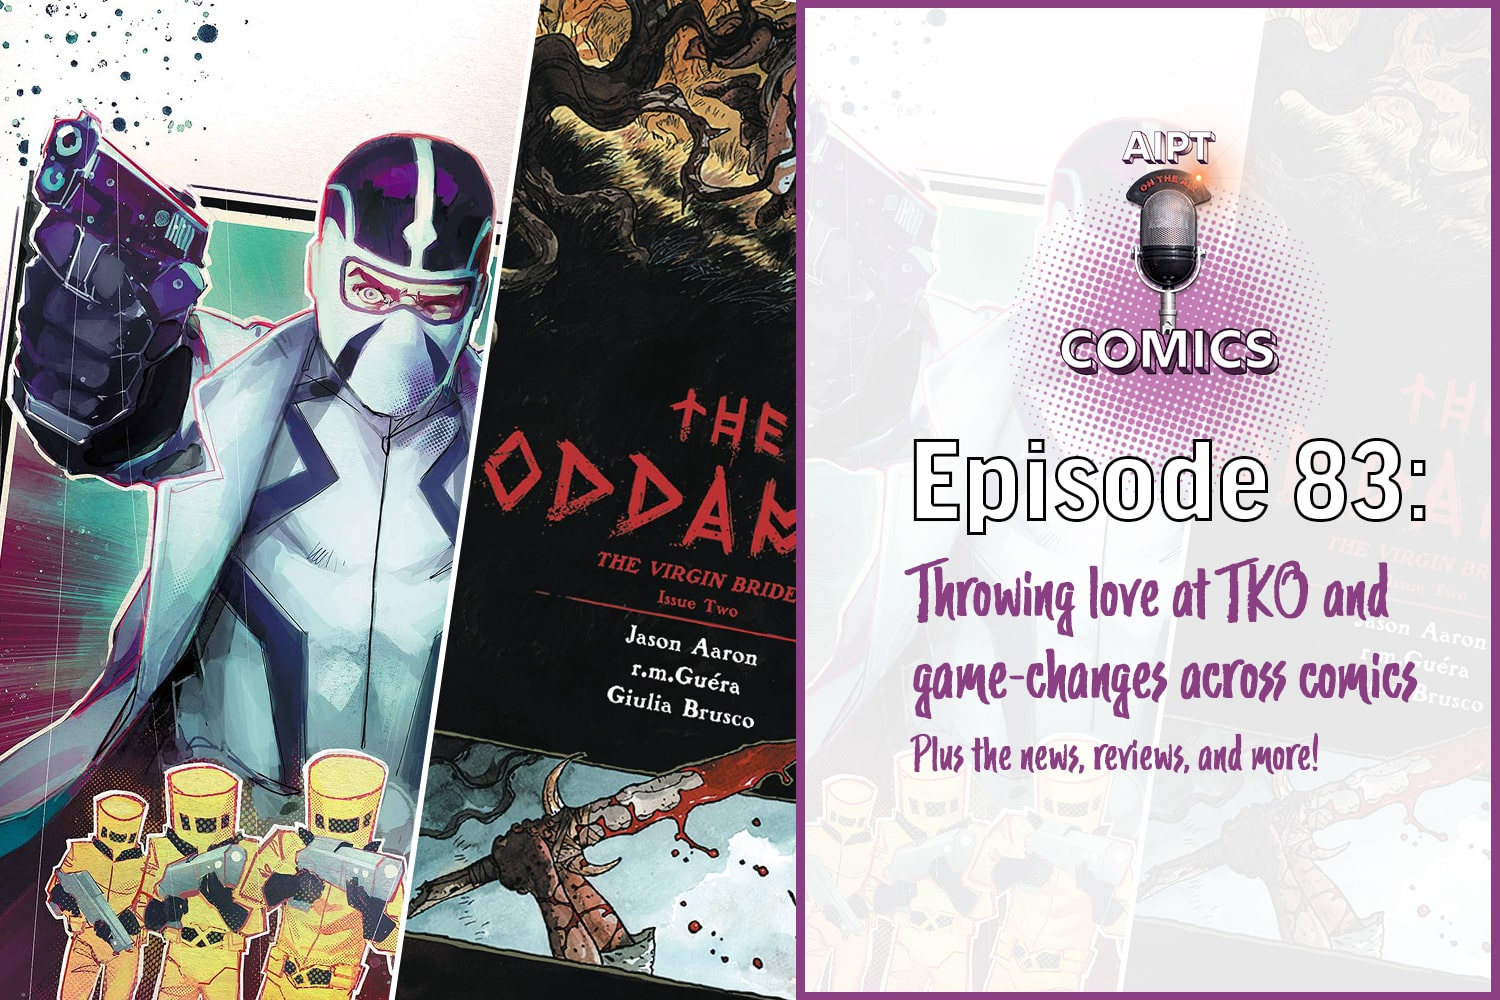 AIPT Comics Podcast Episode 83: Throwing love at TKO and game-changes across comics